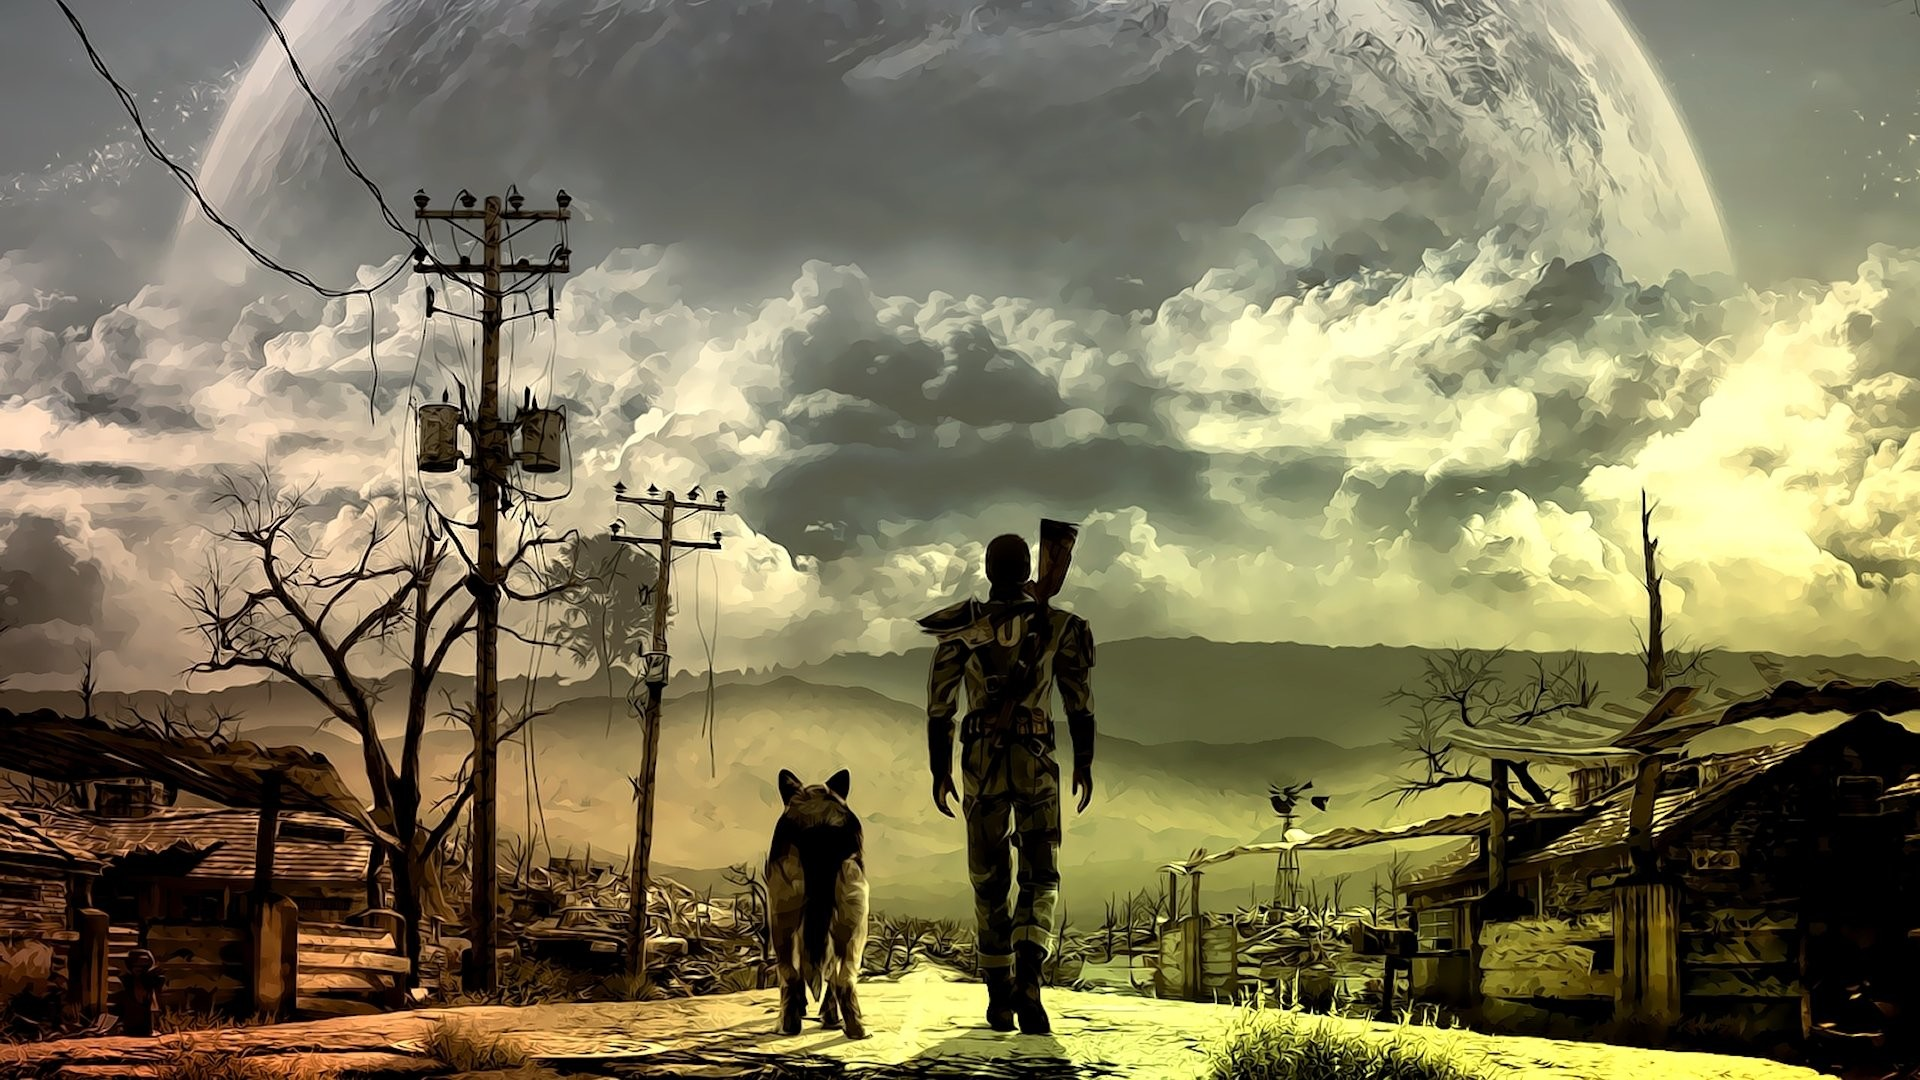 1920x1080 Fallout 3 Wallpapers 1080p